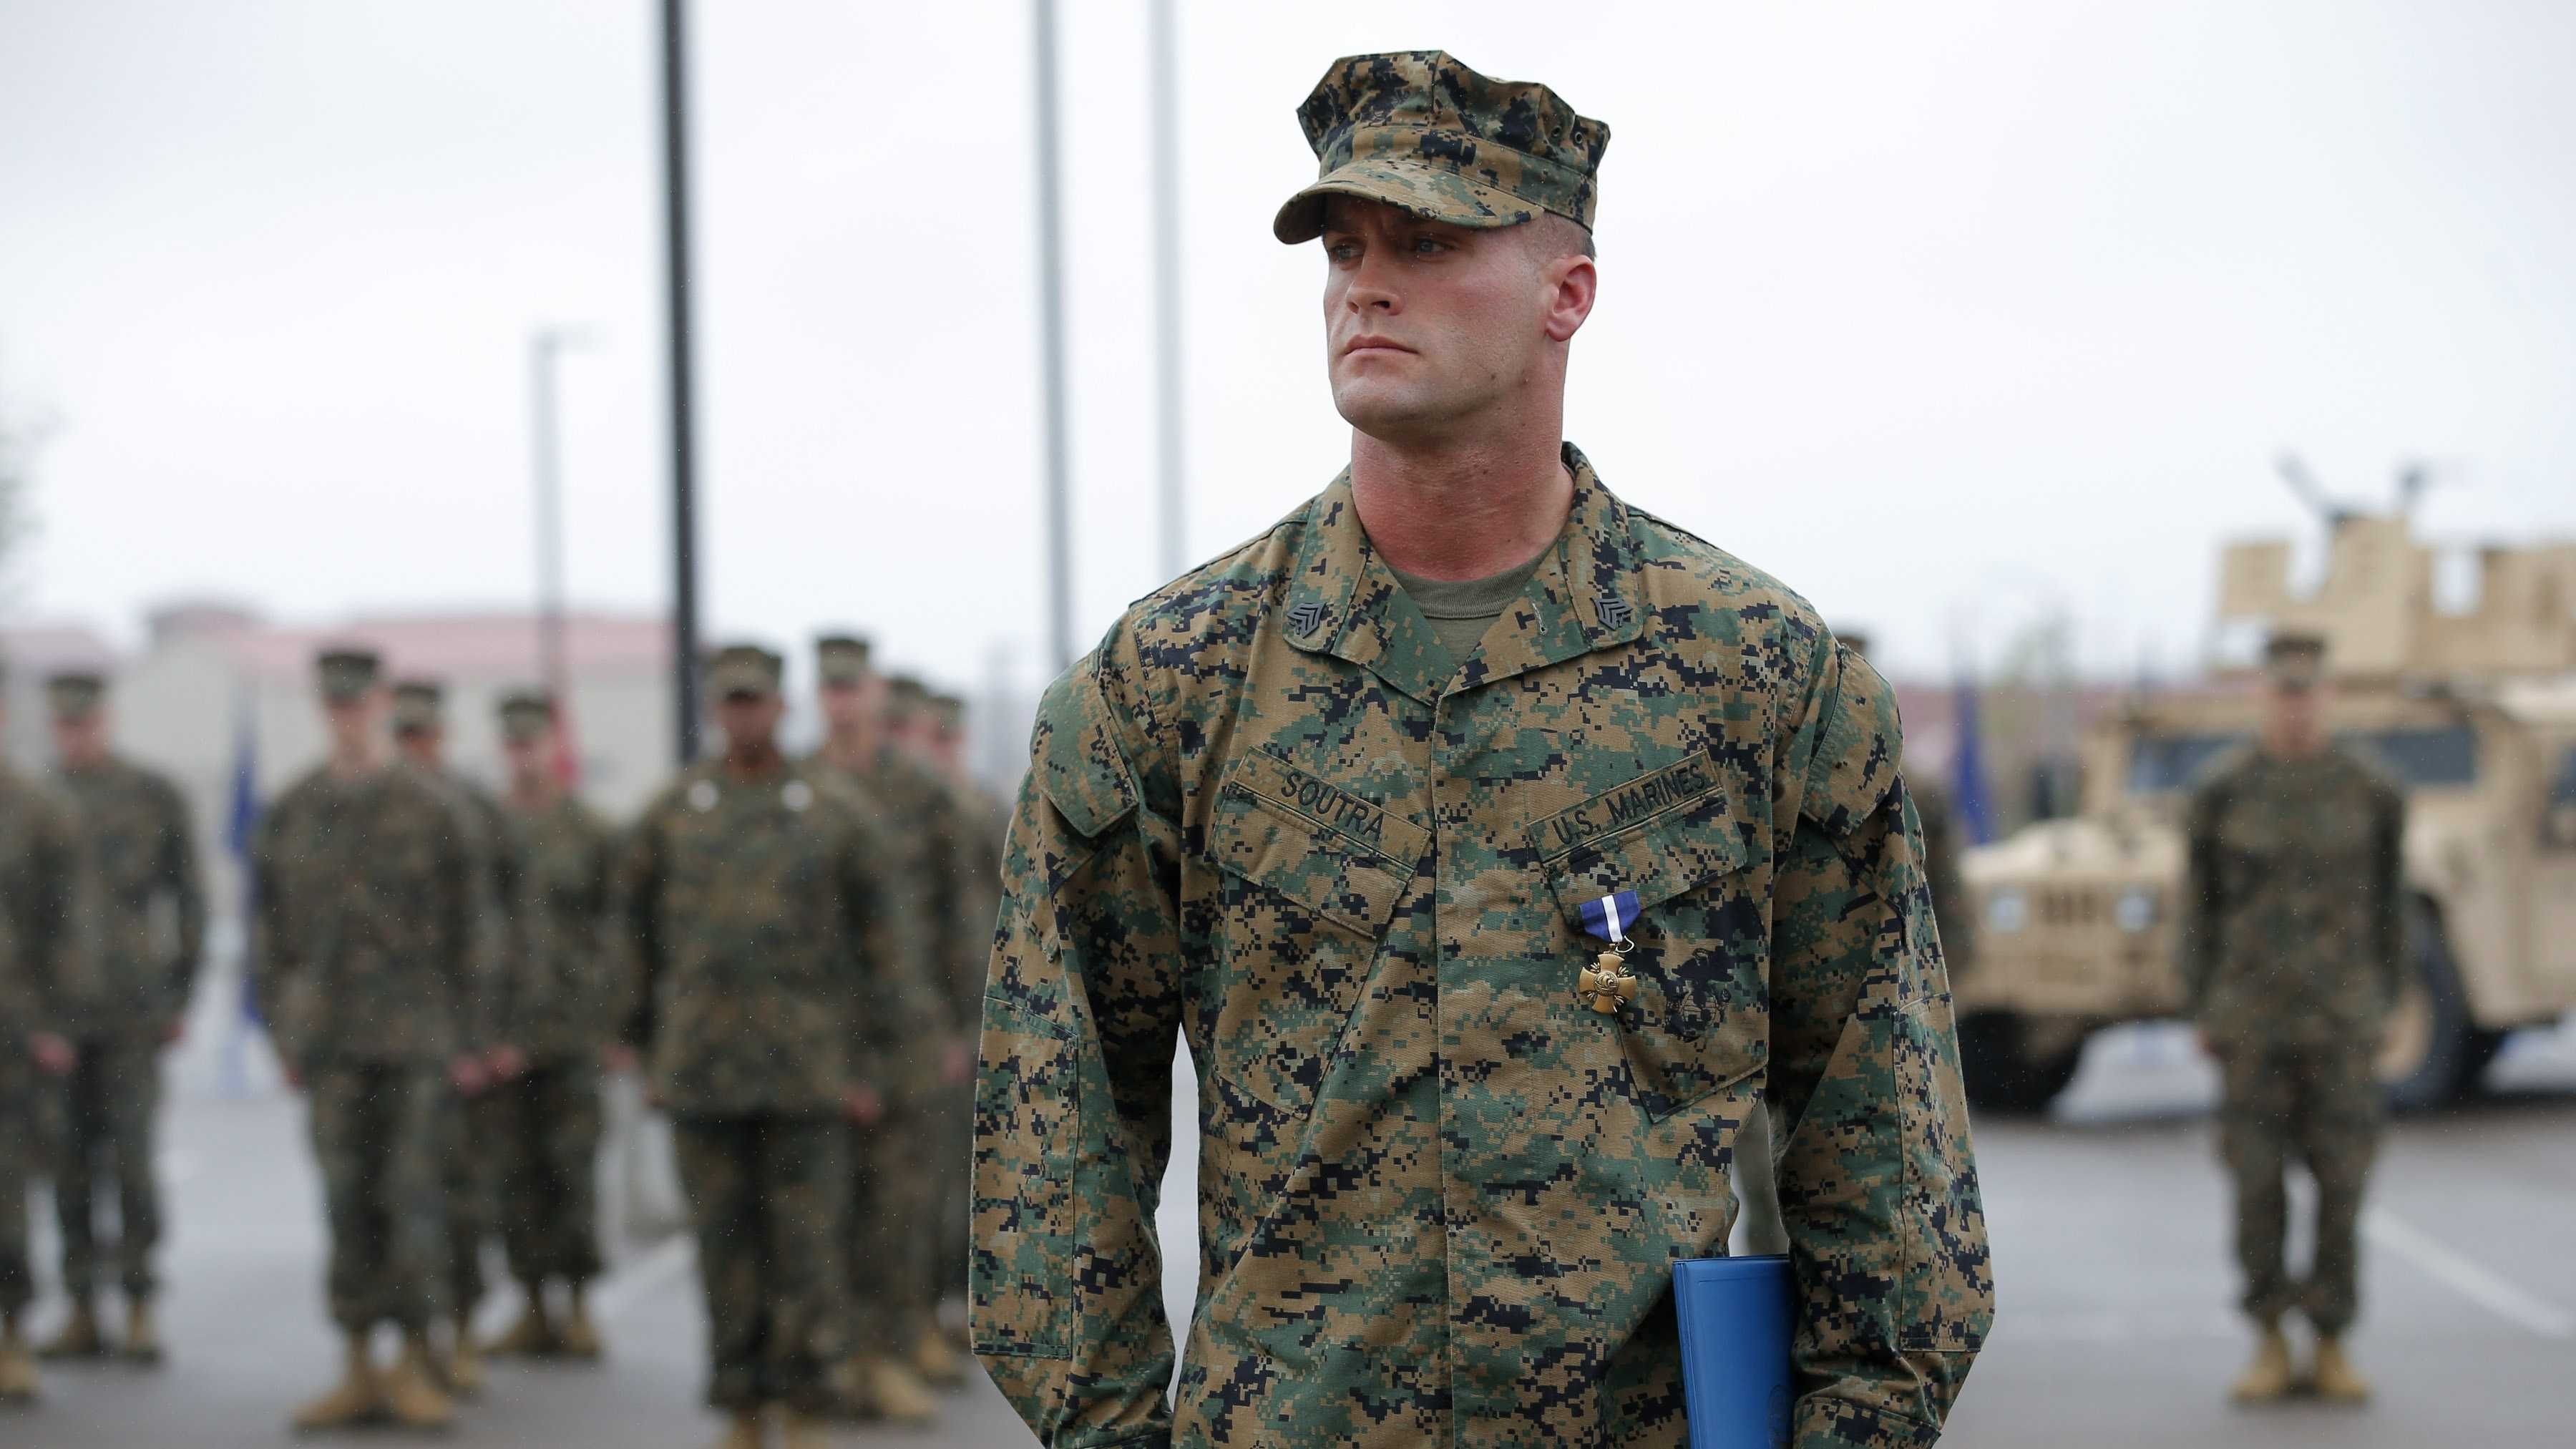 U.S. Marine Sgt. William Soutra Jr. wears the Navy Cross during a ceremony held at Camp Pendleton, Calif., Monday, Dec. 3, 2012. Soutra Jr. was awarded the medal for his heroism while serving in Afghanistan.